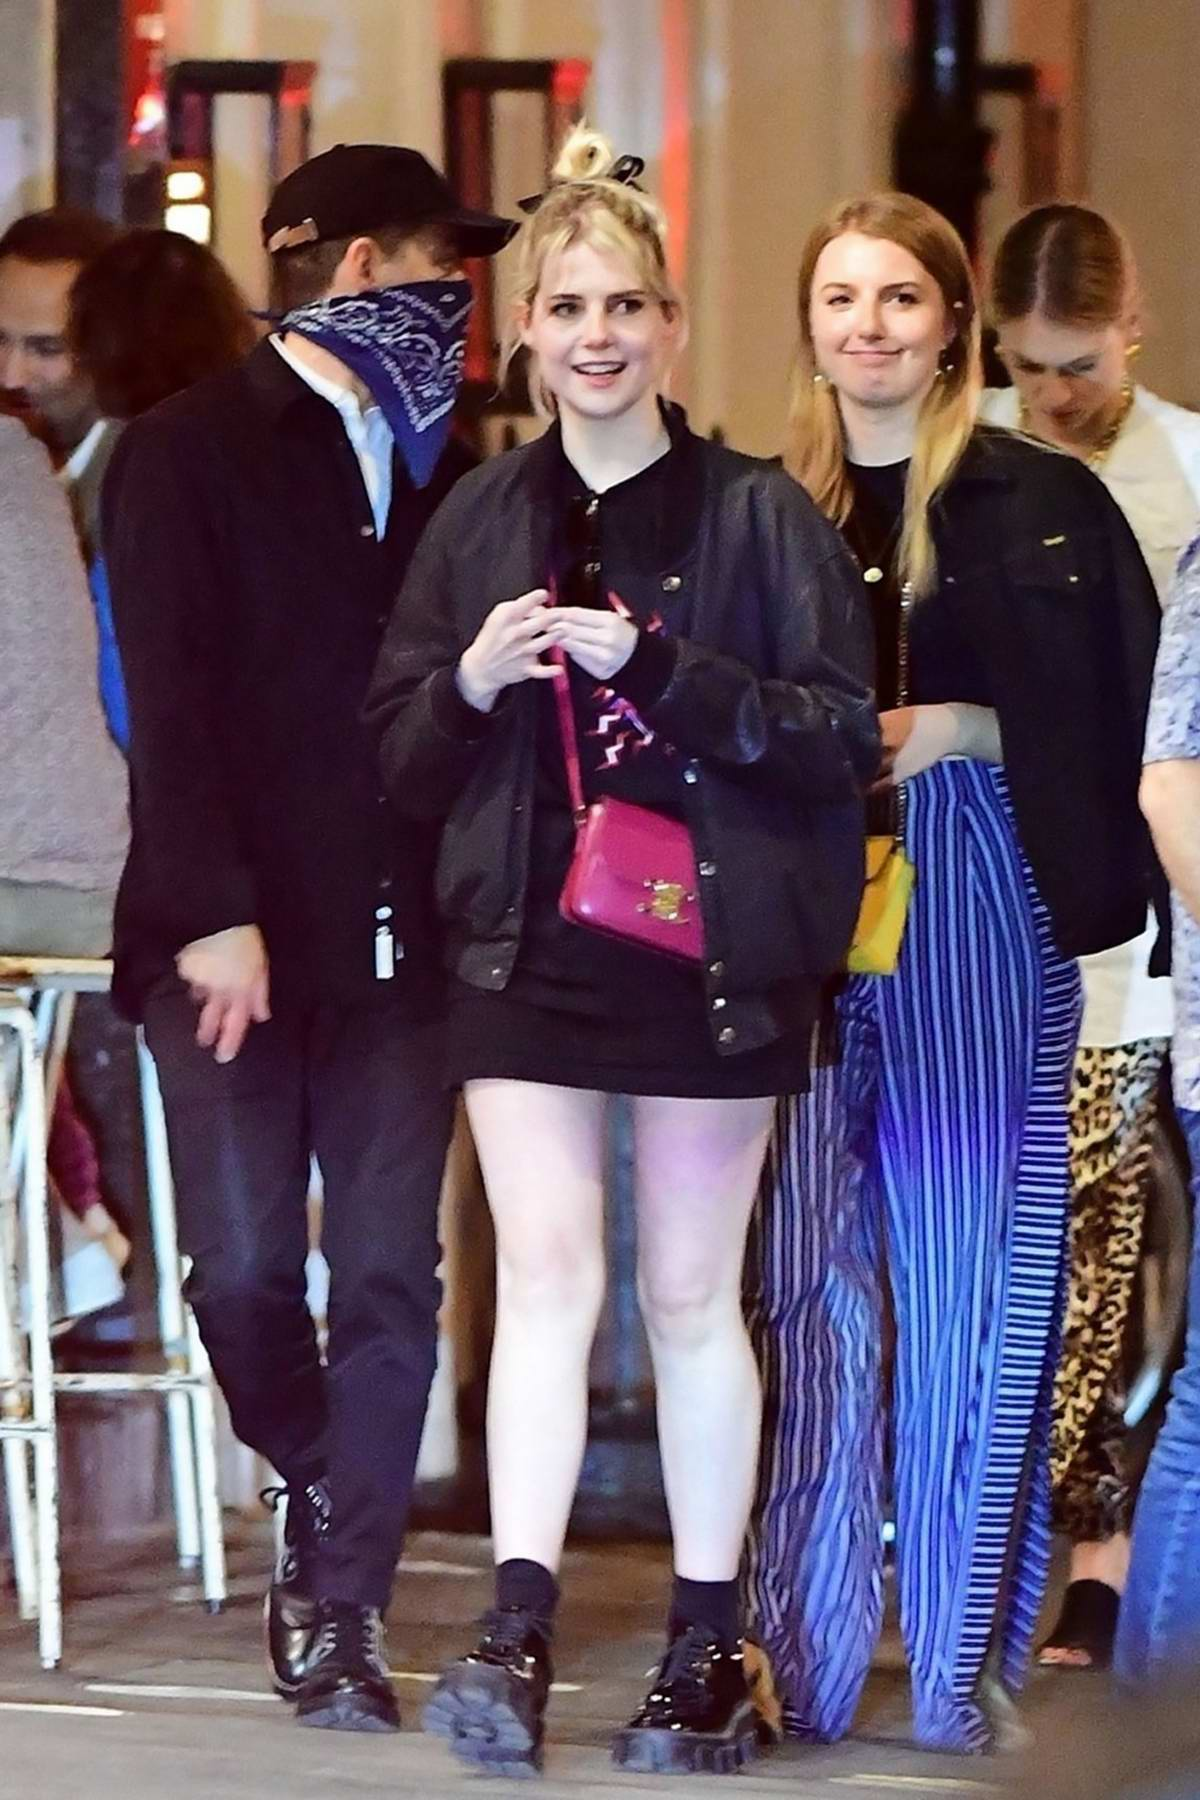 Lucy Boynton and Rami Malek step out for dinner at Vietnamese restaurant Cay Tre in Soho, London, UK